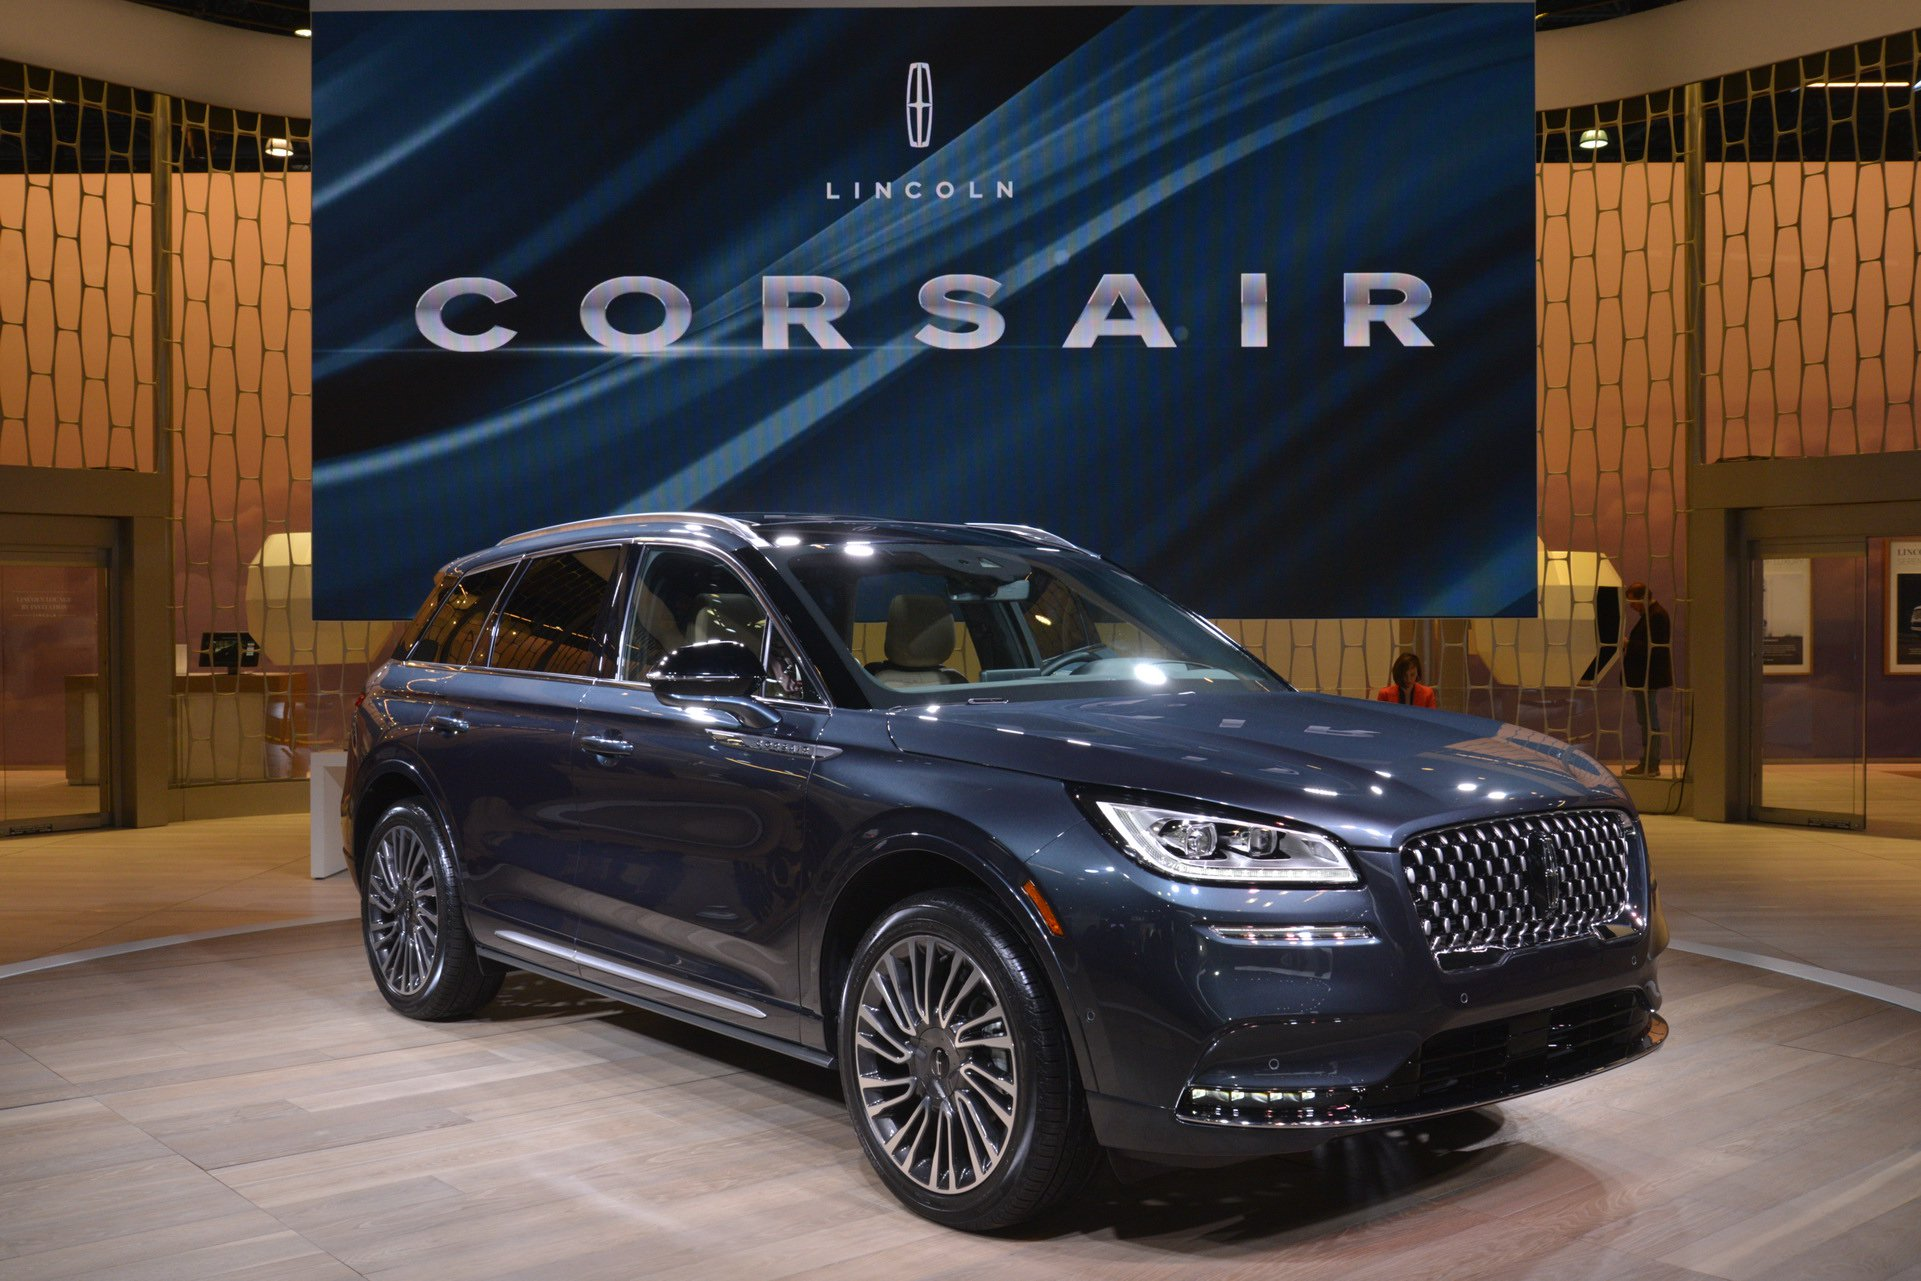 2020-lincoln-corsair-1.jpg